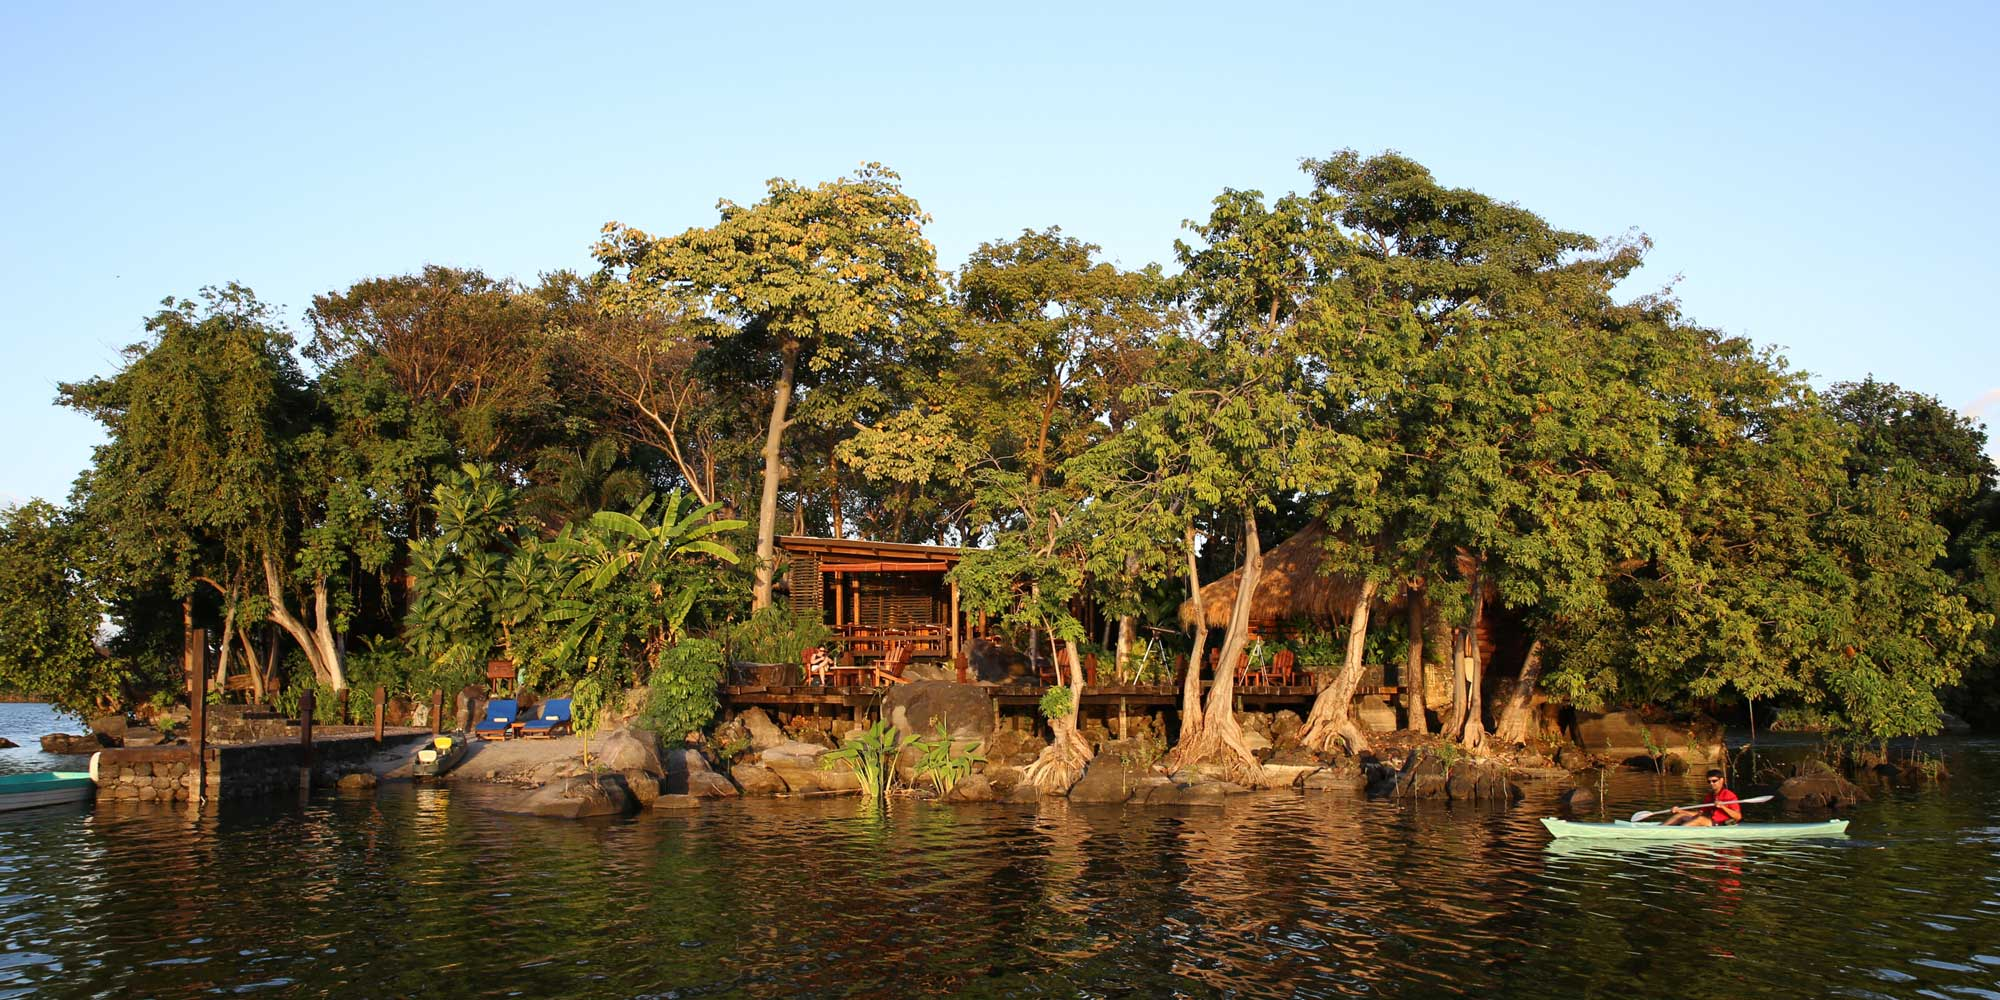 Private Islands for Sale in Nicaragua